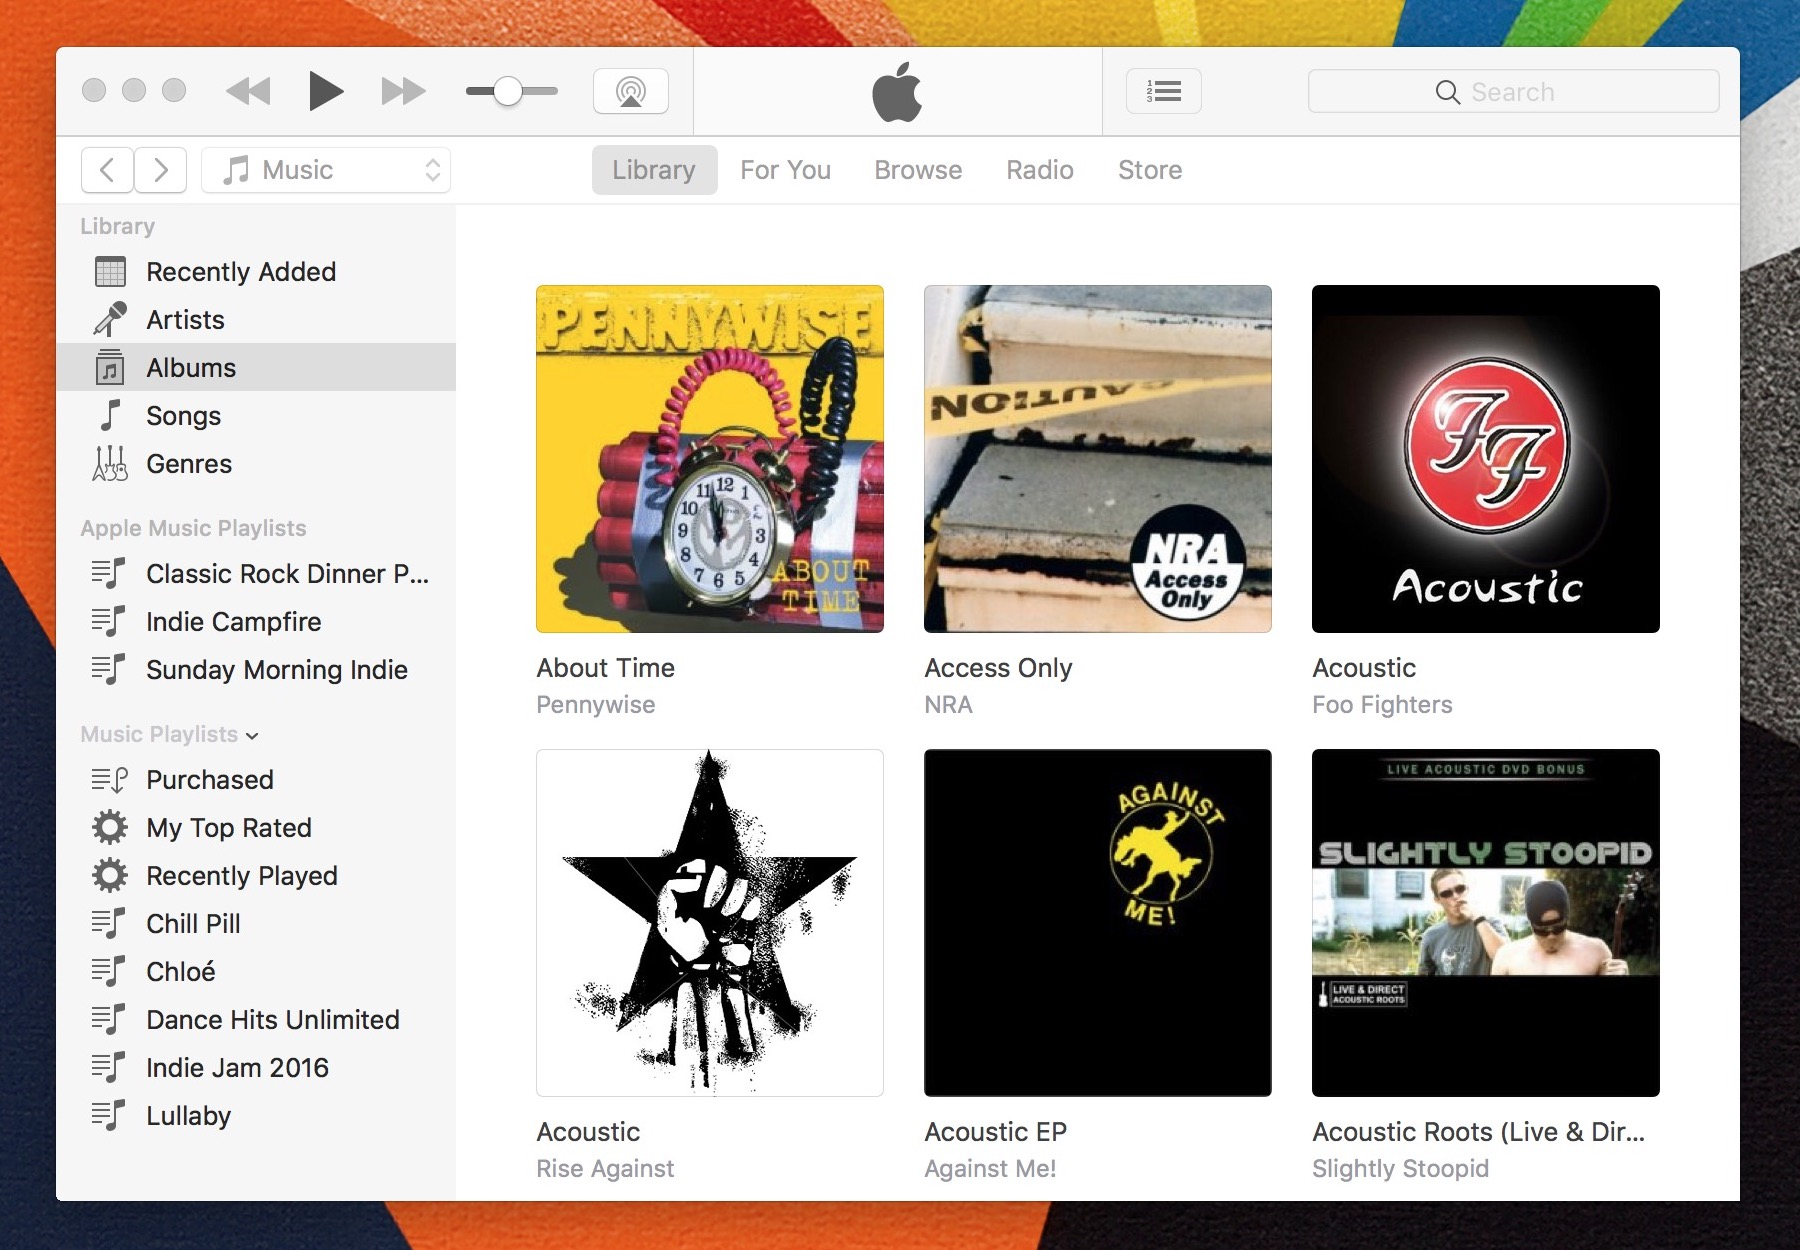 How to download your entire music library to your iPhone or iPad